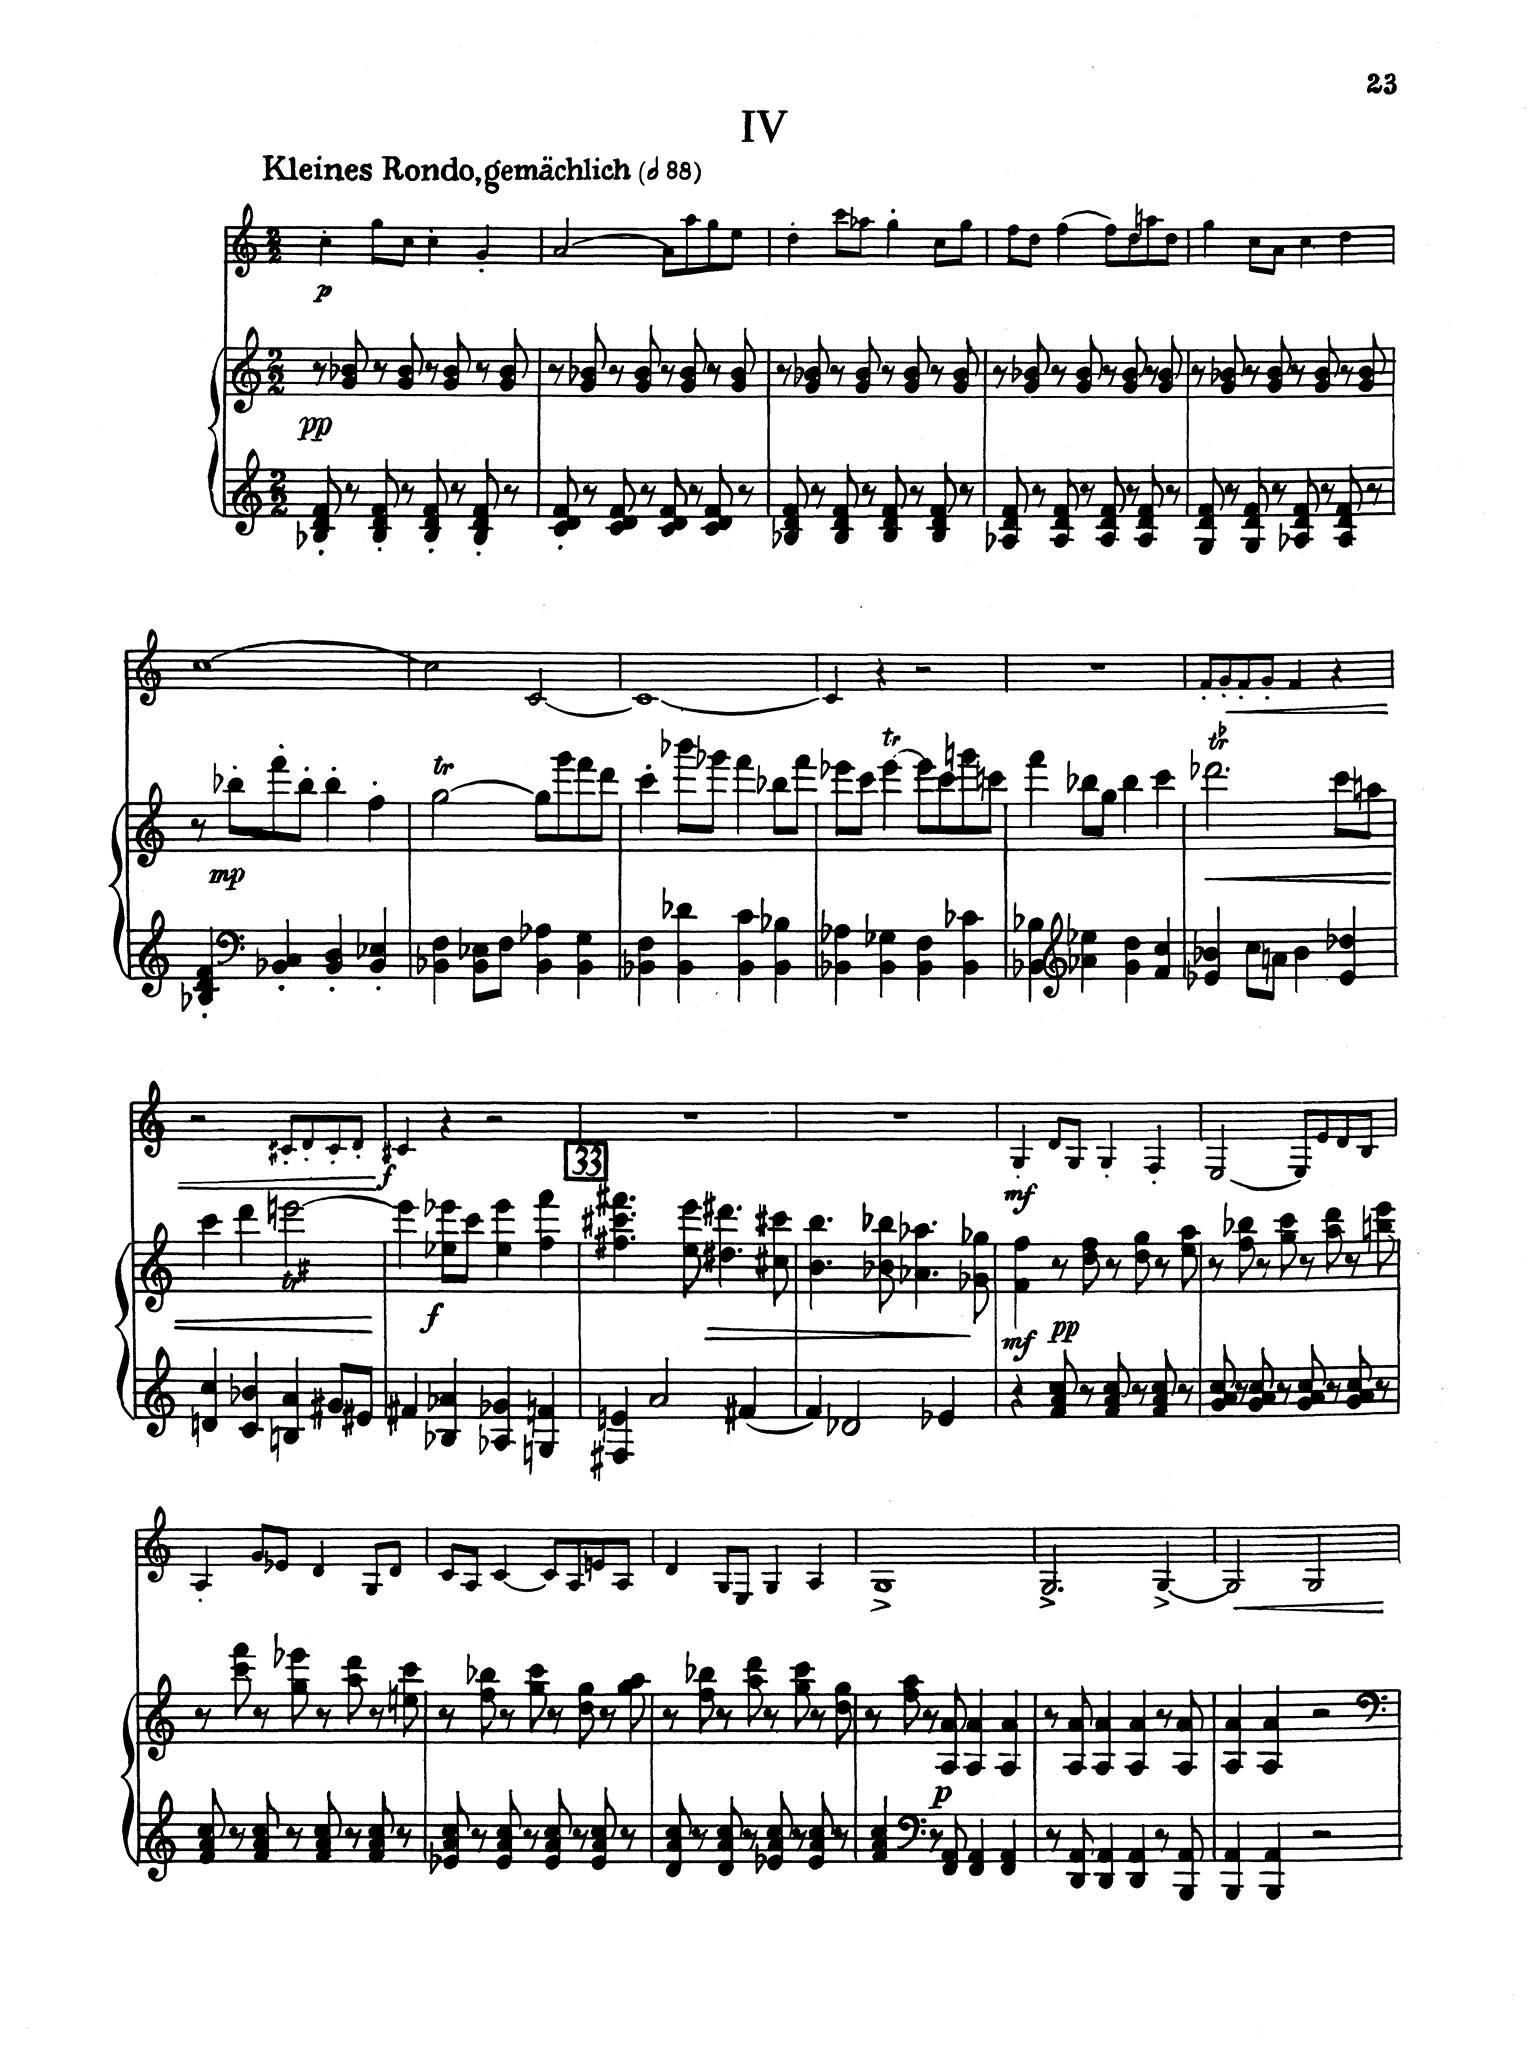 Sonata in B-flat Major - Movement 4